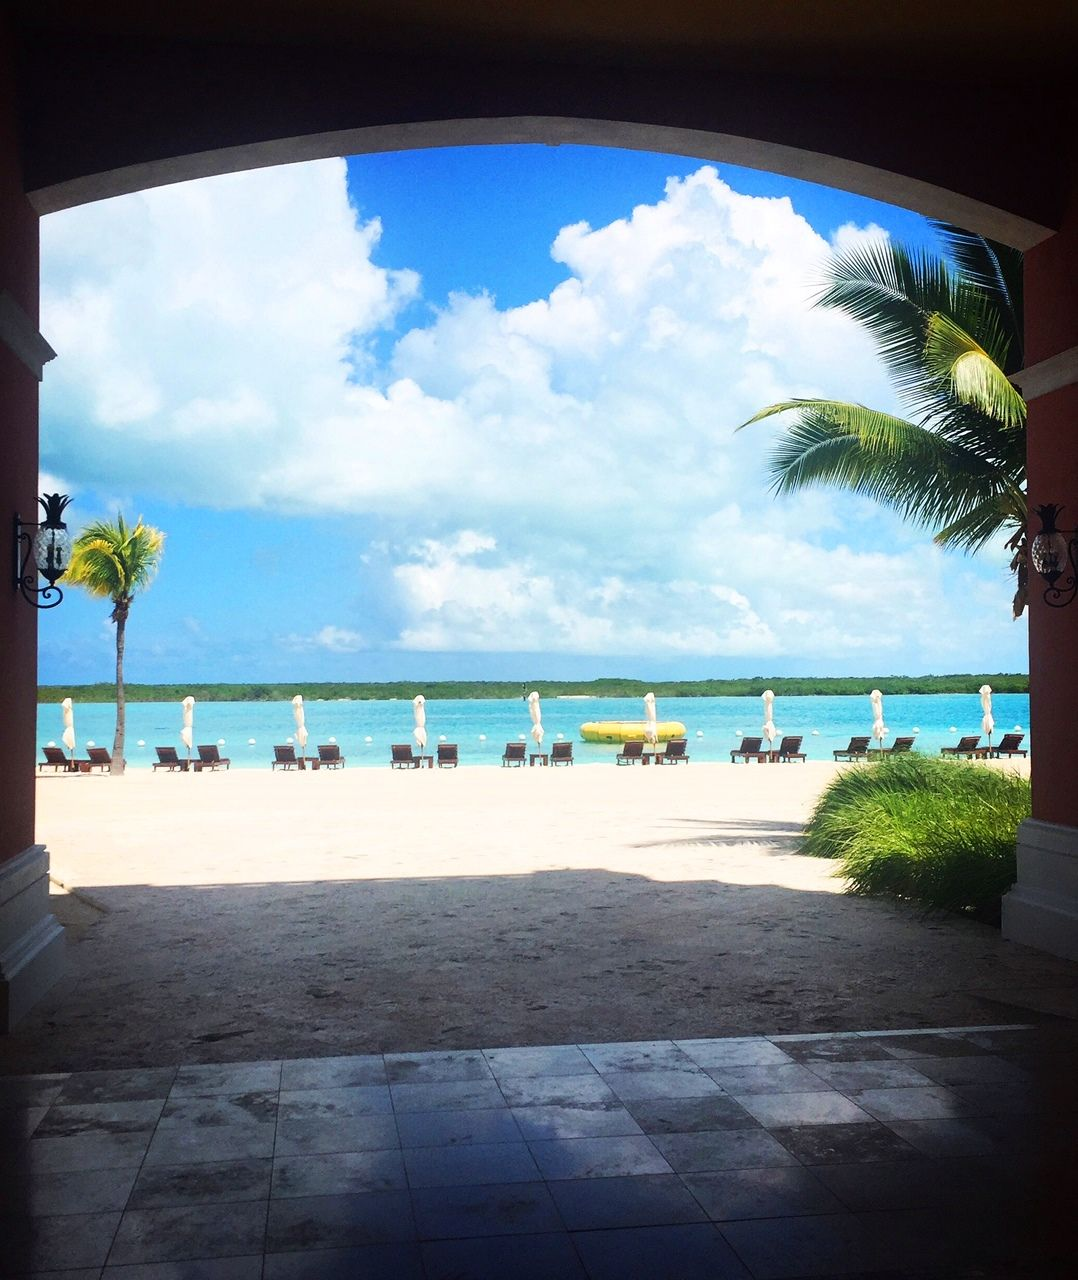 Welcome to Paradise! (Blue Haven Resort, Turks & Caicos, Sept 2016)